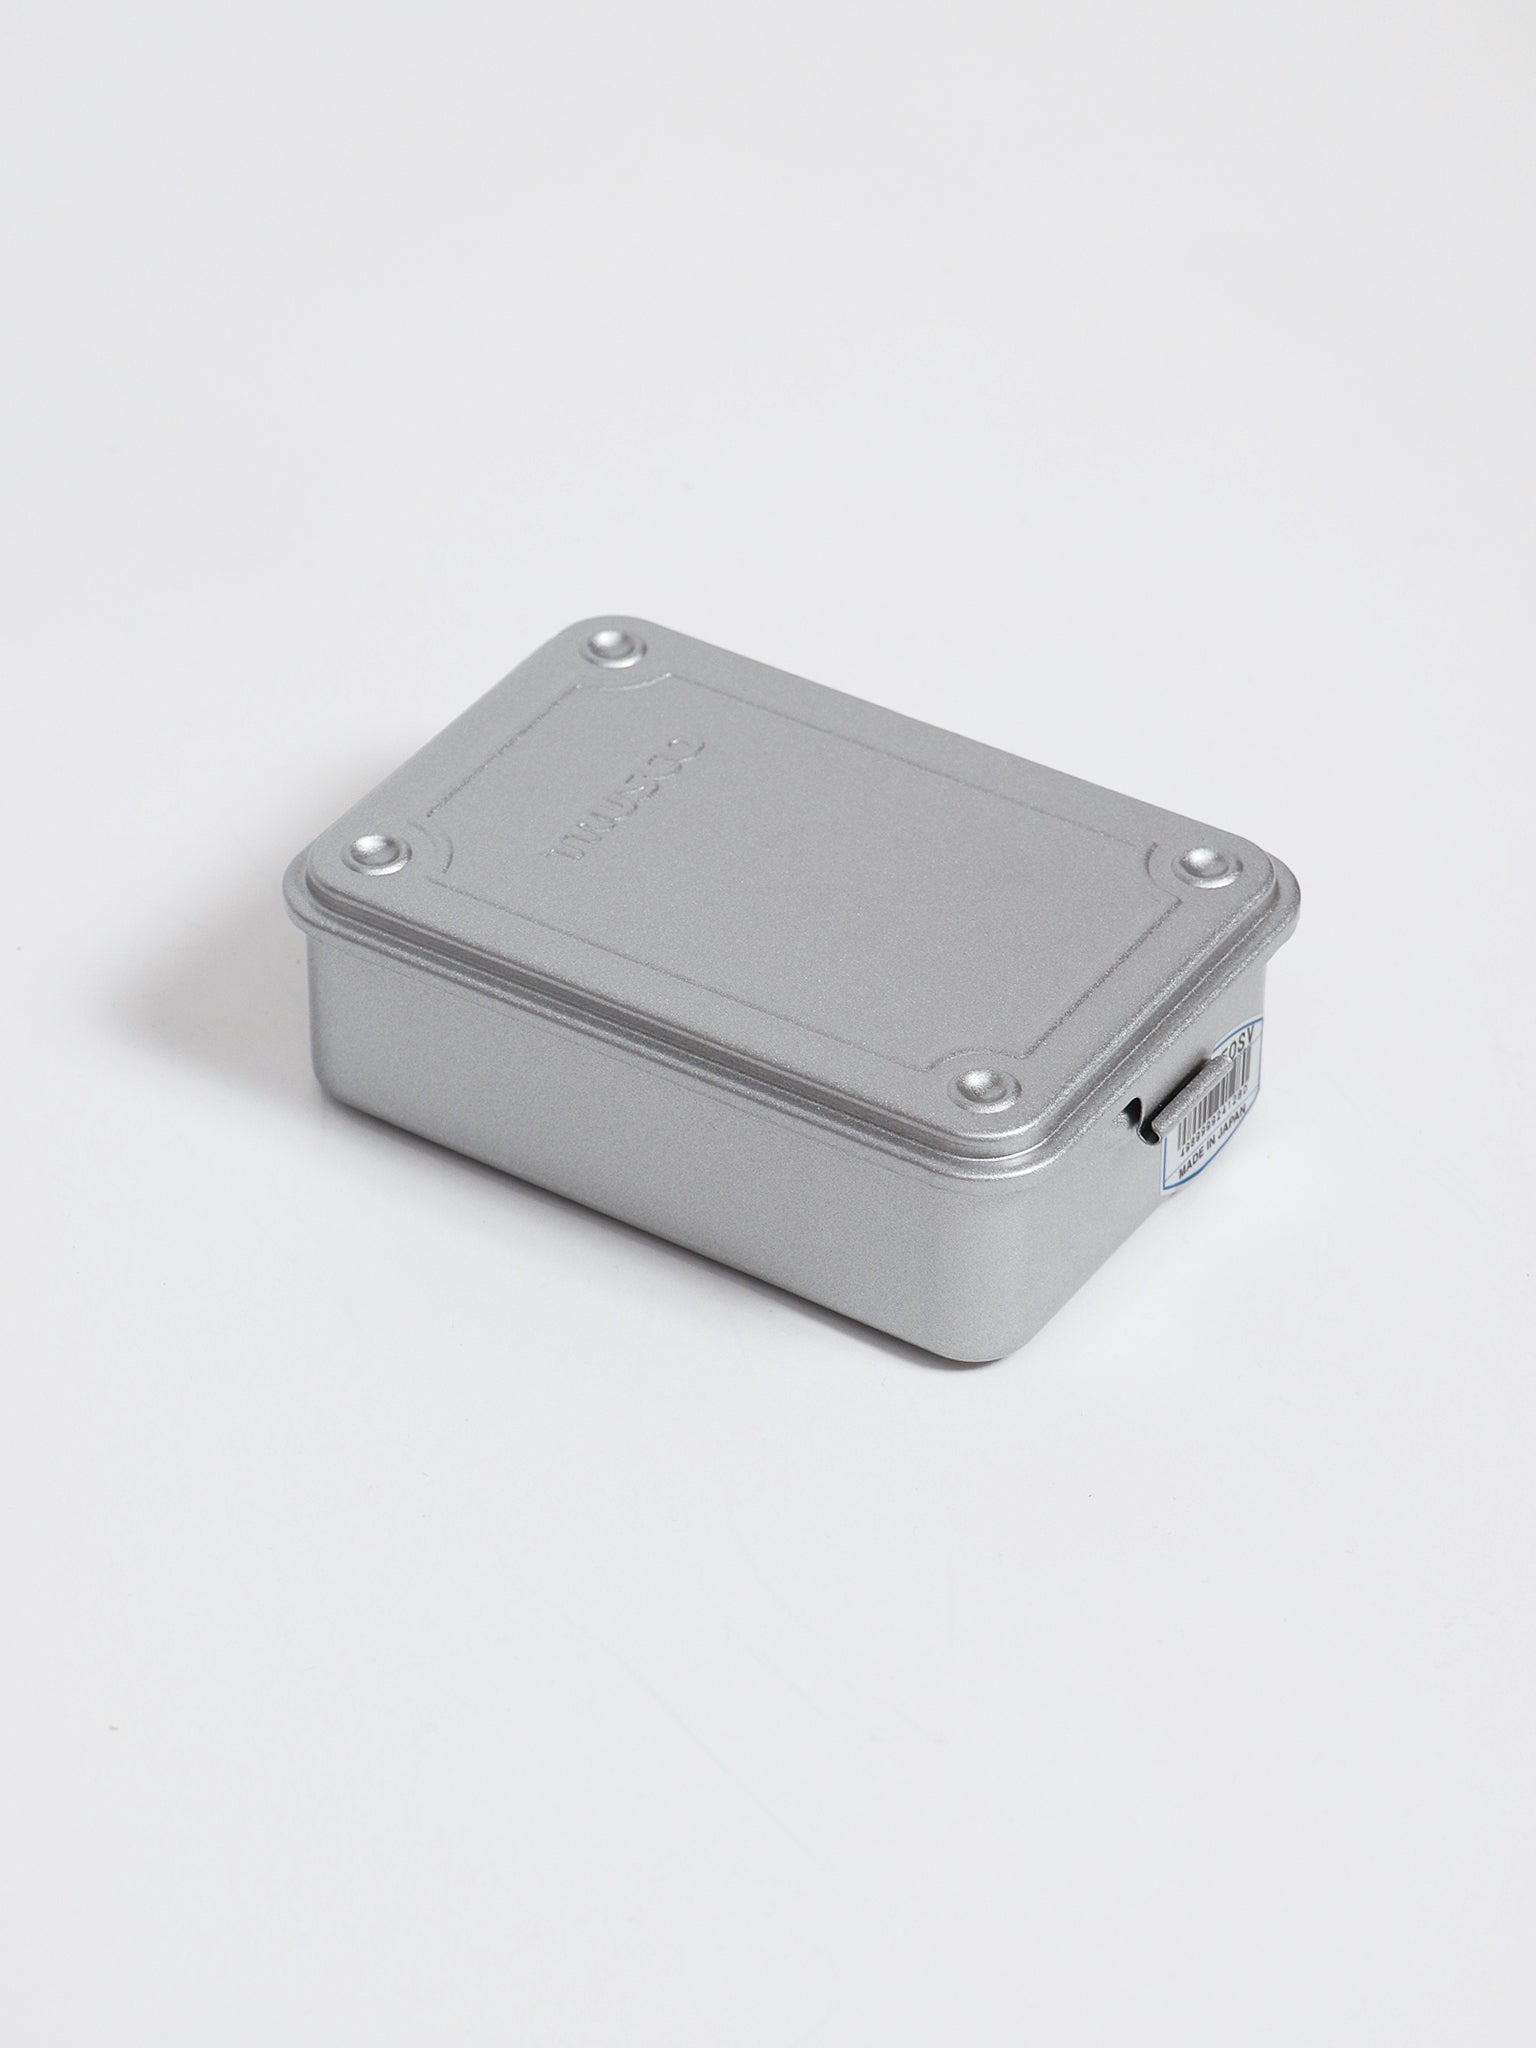 Trusco Utility toolbox T-150 silver